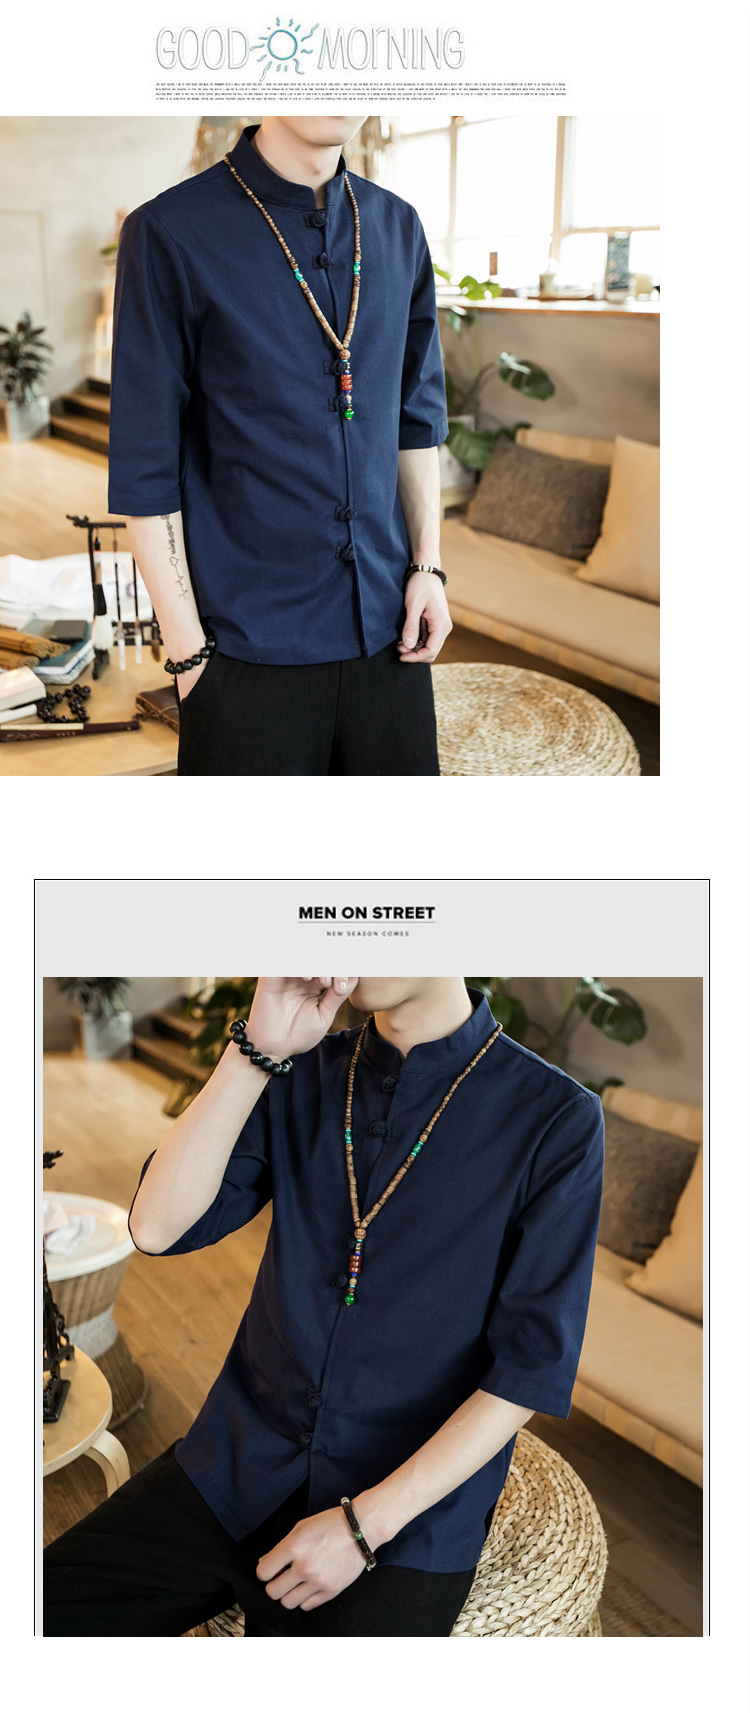 Chinese style summer fashion man's Pure color linen Short sleeve shirt high-grade male comfortable slim fit leisure shirt M-5XL 50